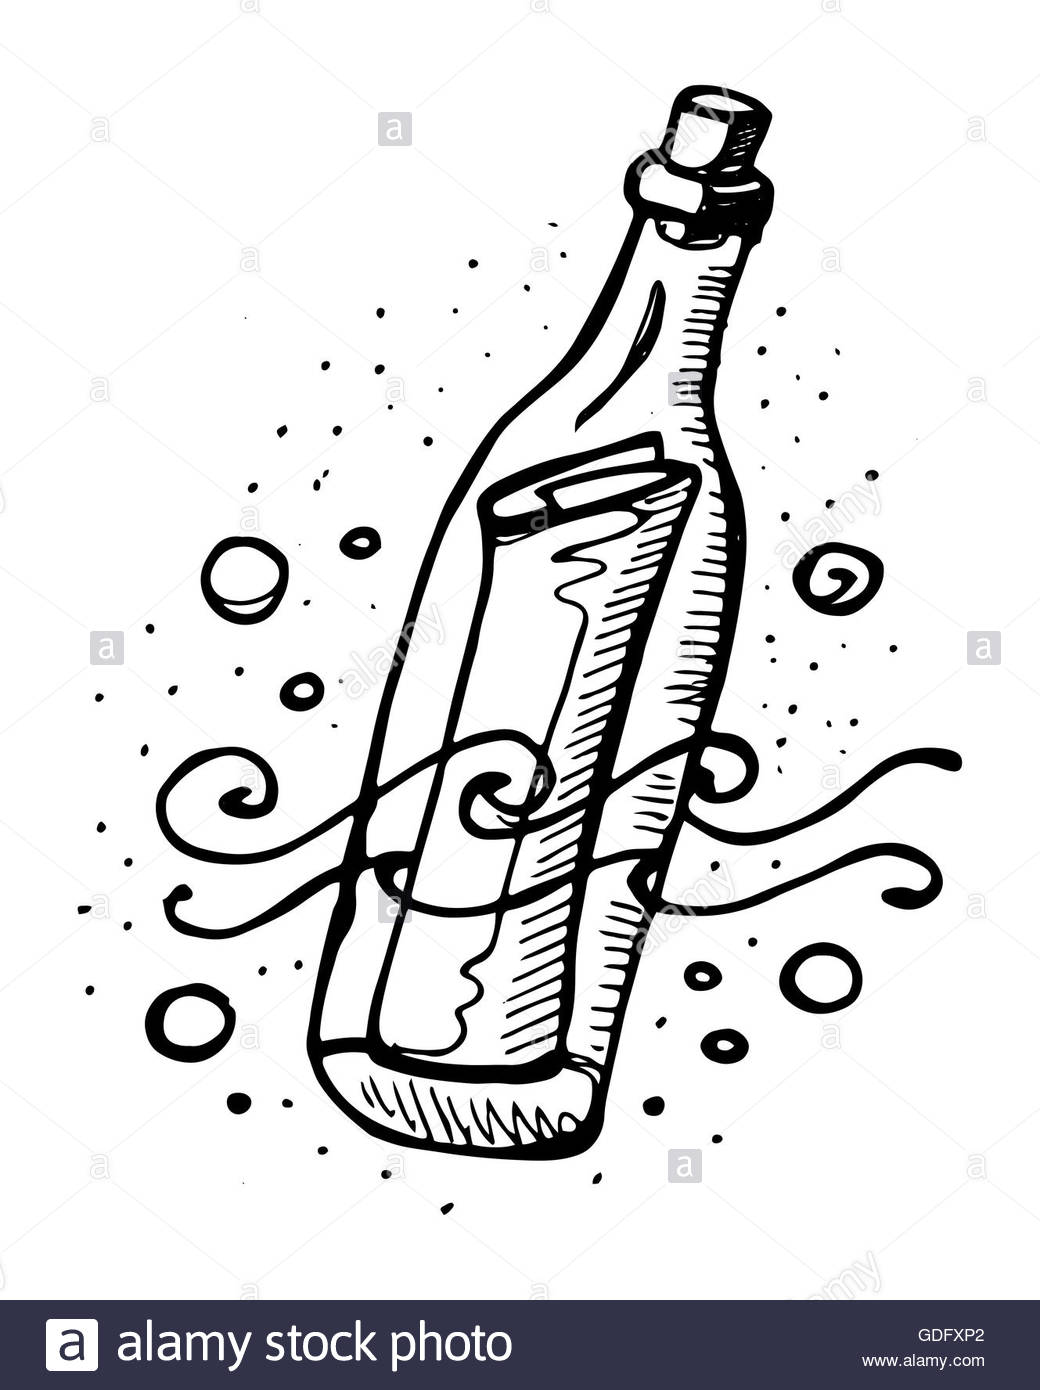 1040x1390 Hand Drawn Vector Illustration Or Drawing Of A Message In A Bottle